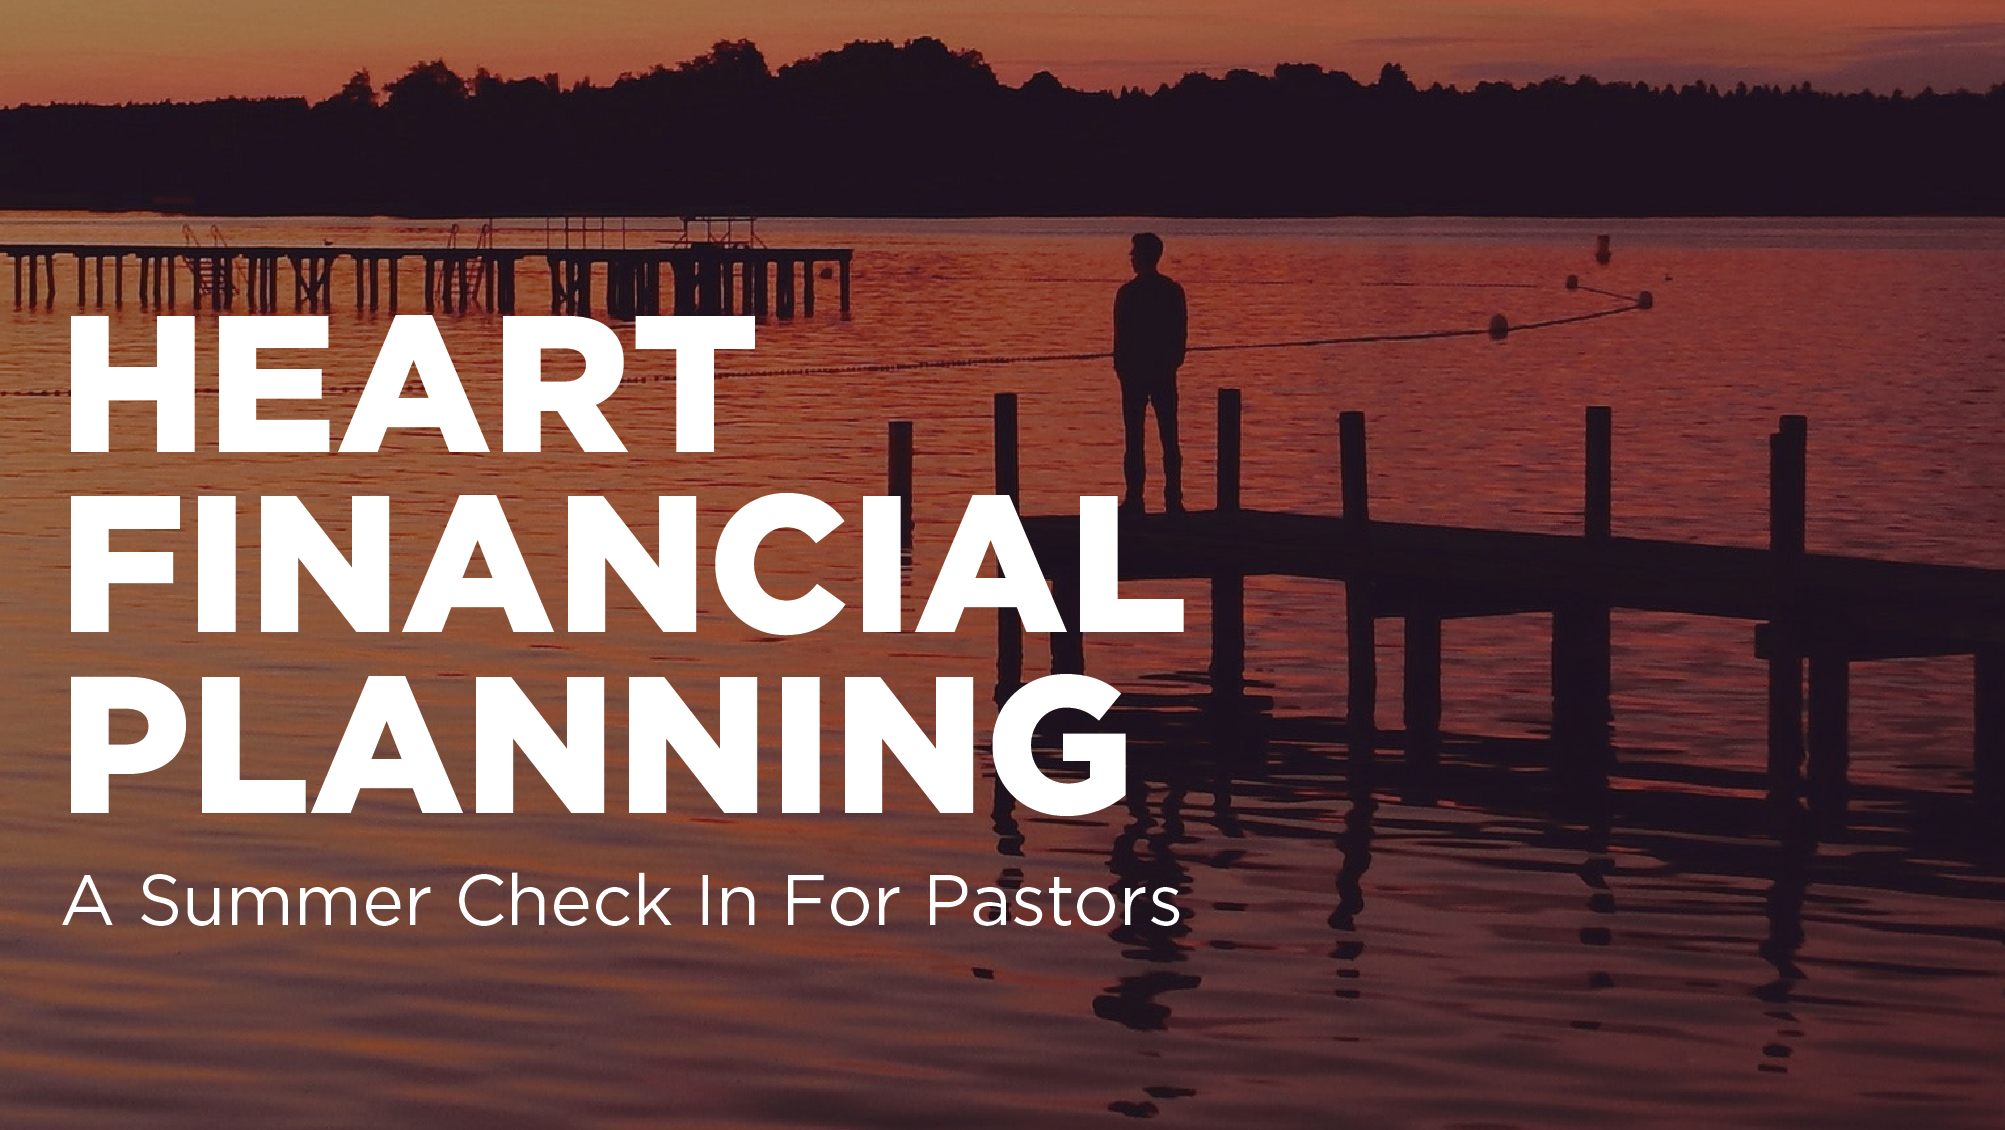 Heart Financial Planning: A Summer Check-In For Pastors